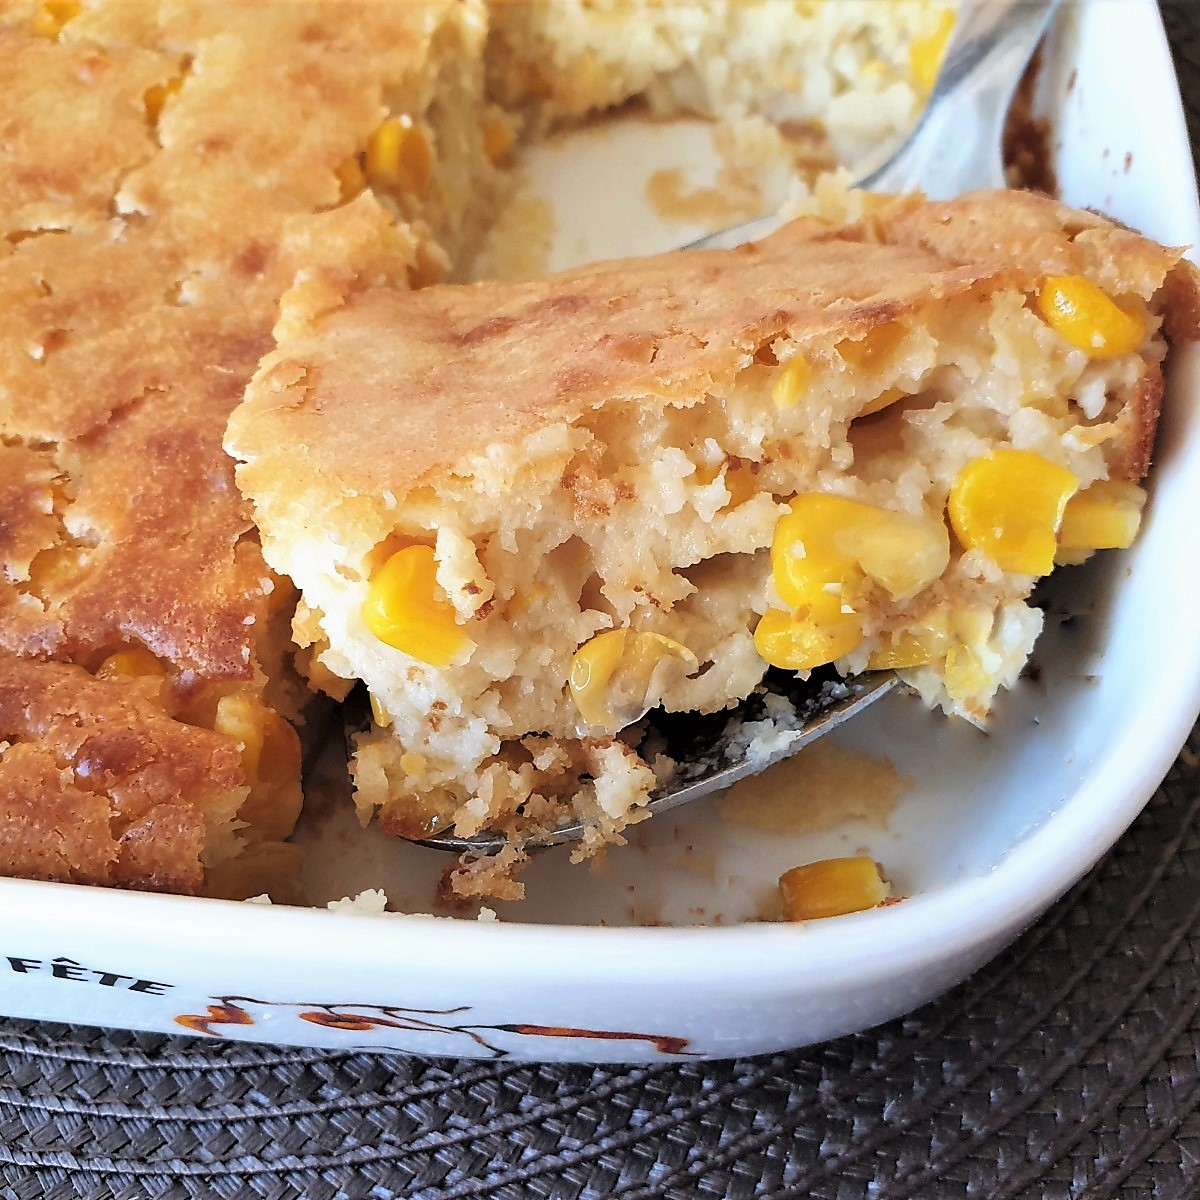 A spoonful of cornbread casserole being lifted from the baking dish.